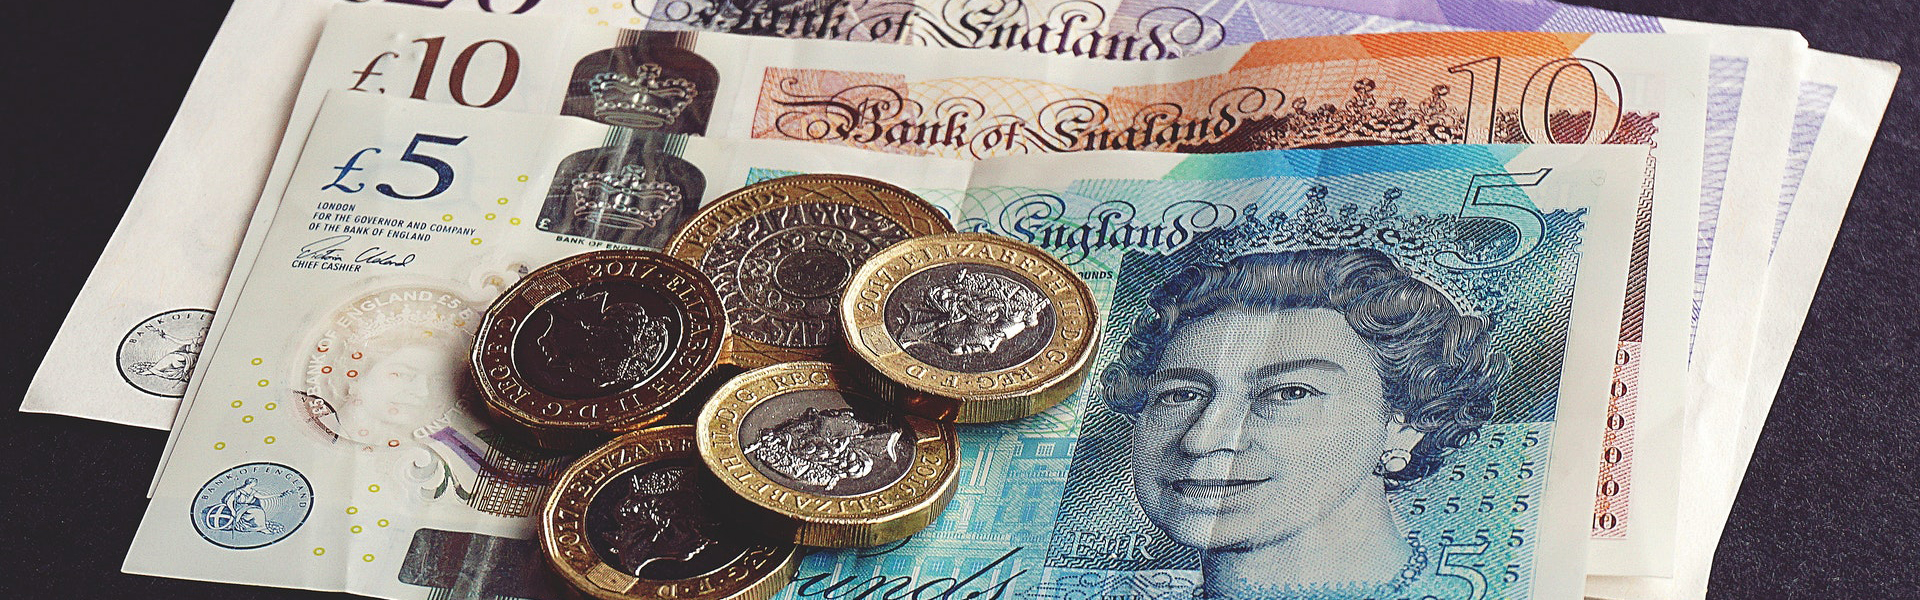 Bank of Mum and Dad – Be prepared to protect your generosity